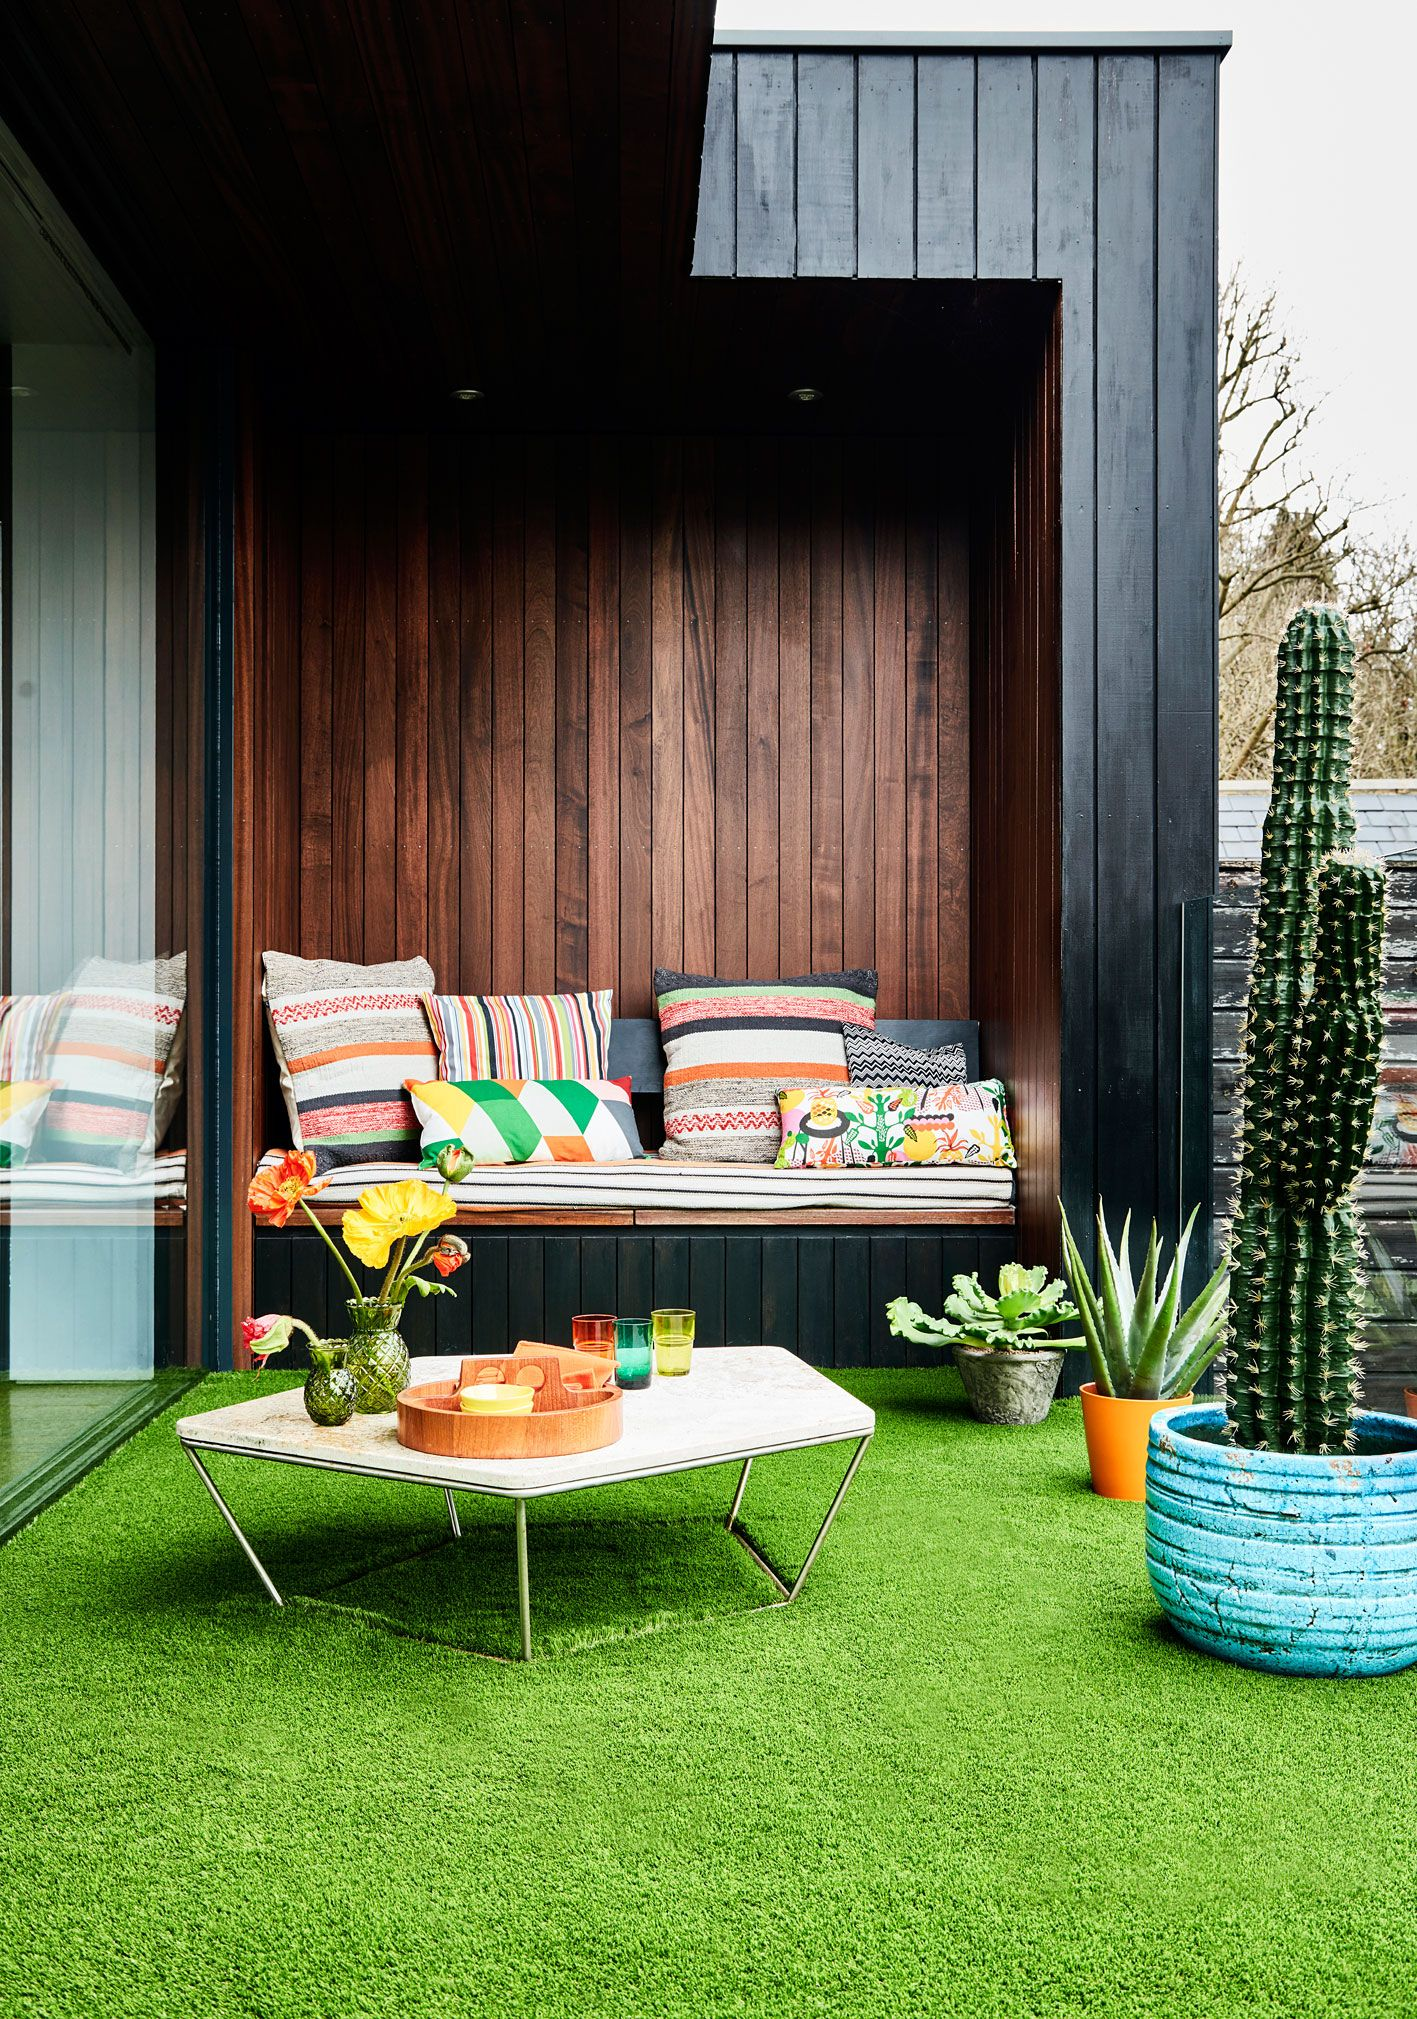 16 hacks for small outside spaces you need to try